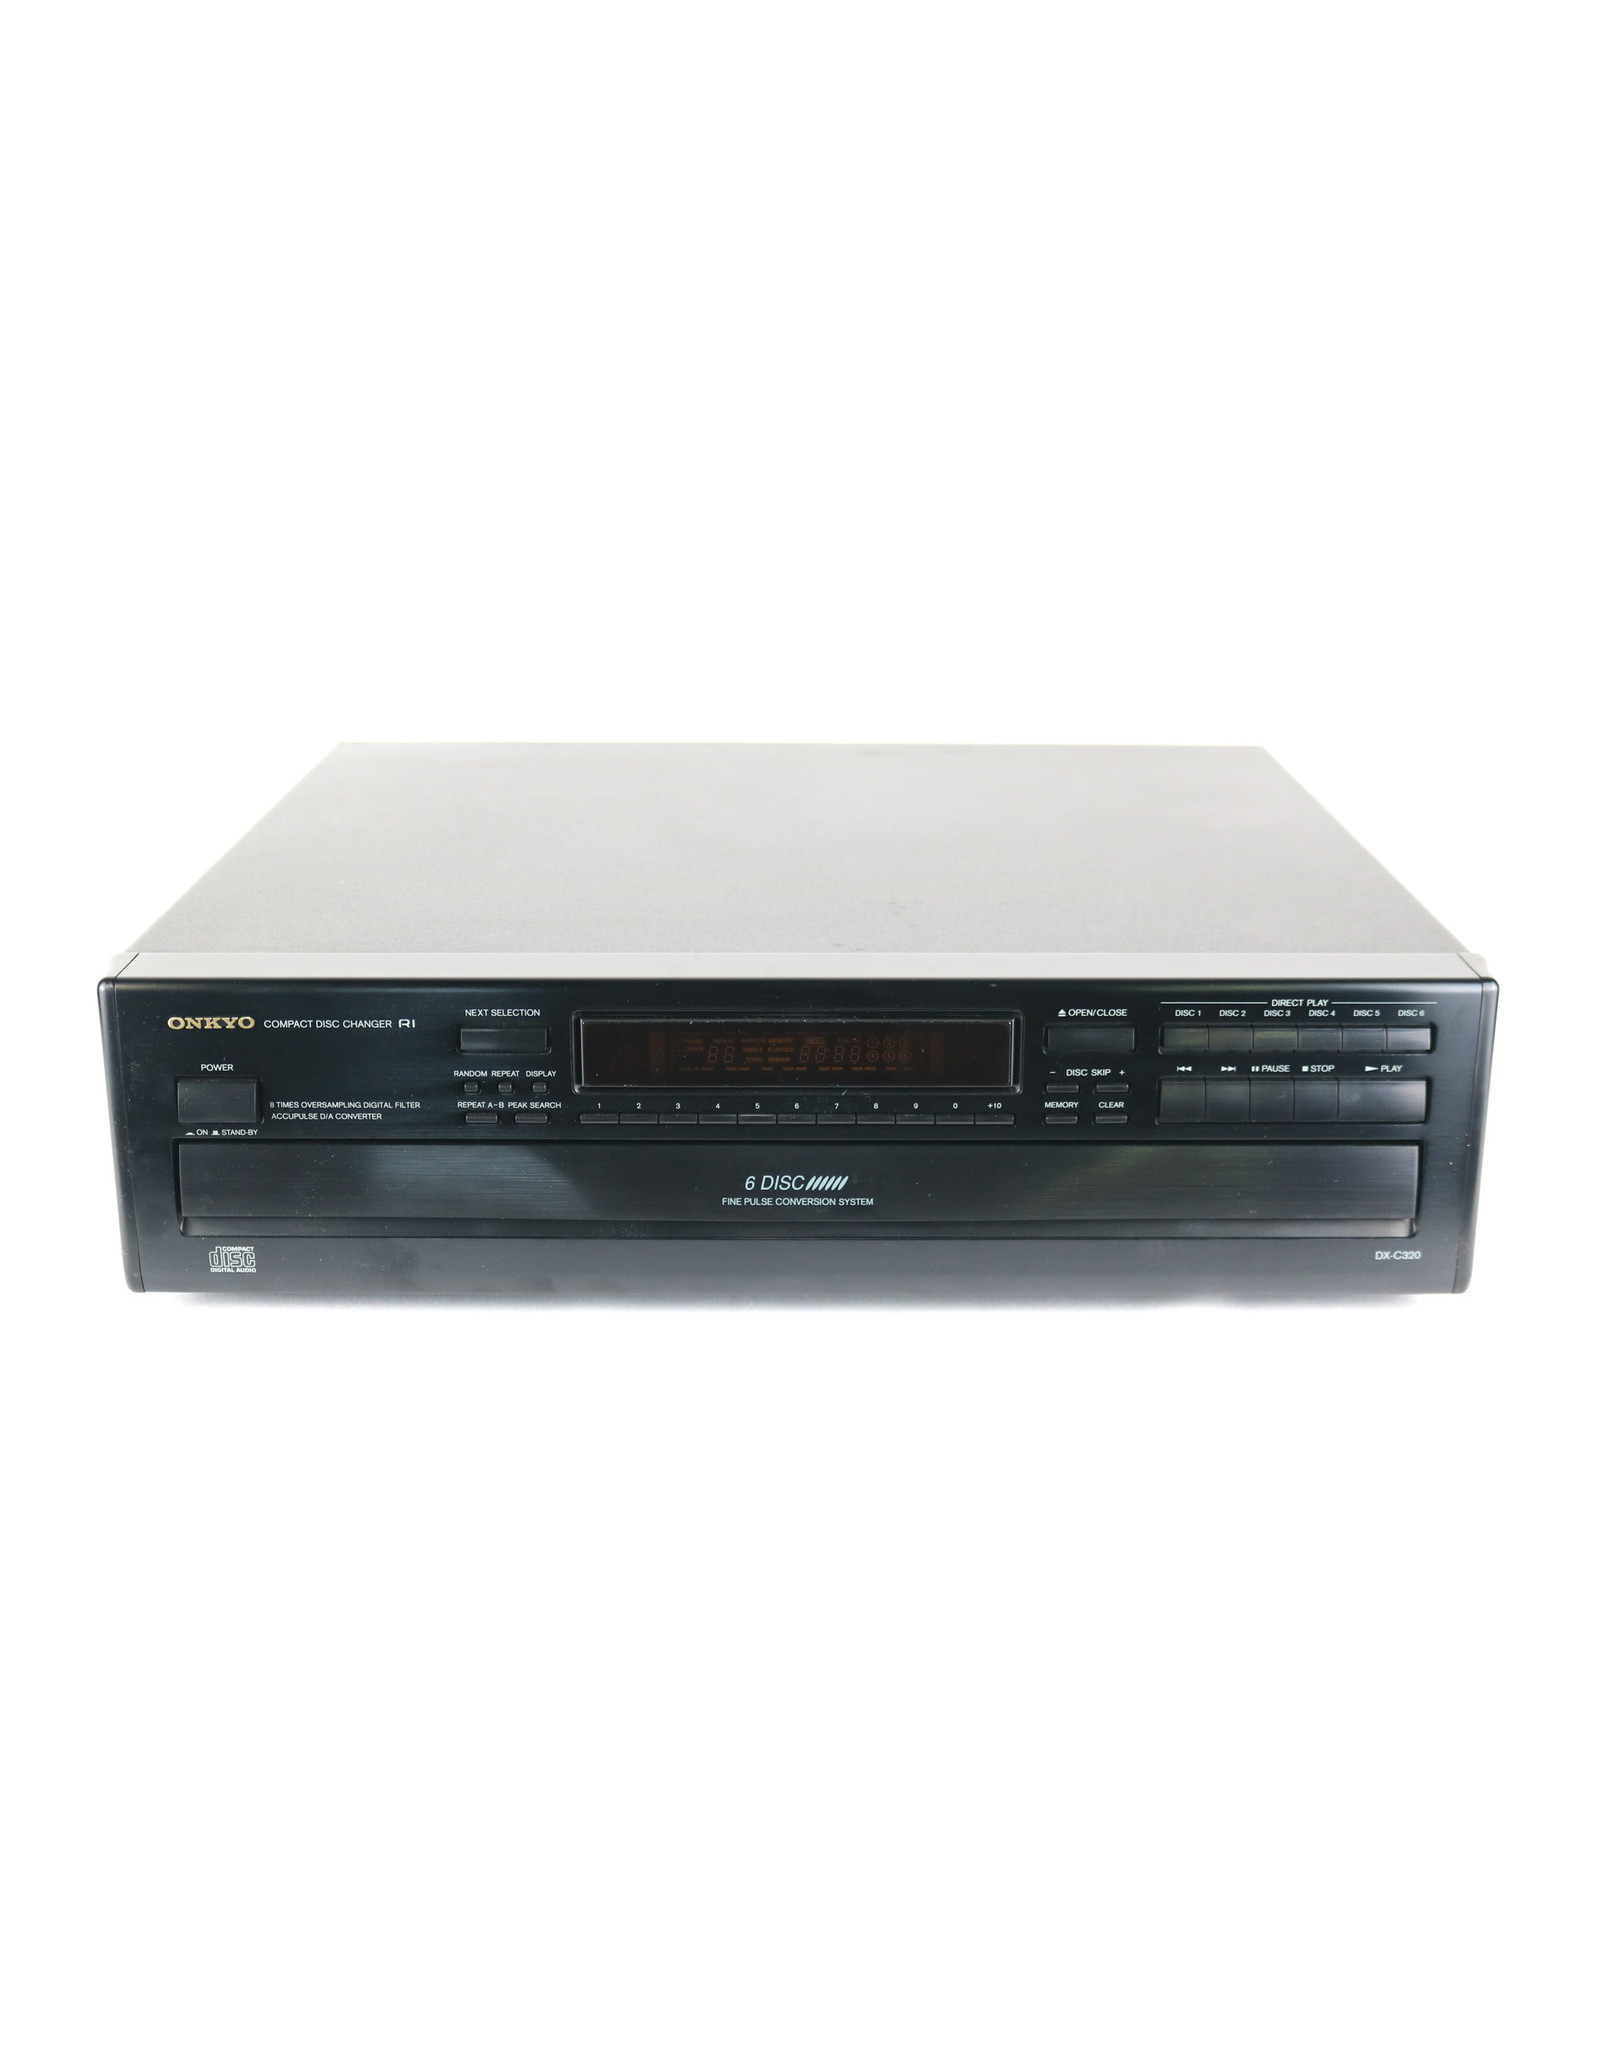 Onkyo Onkyo DX-C320 6-Disc CD Player USED